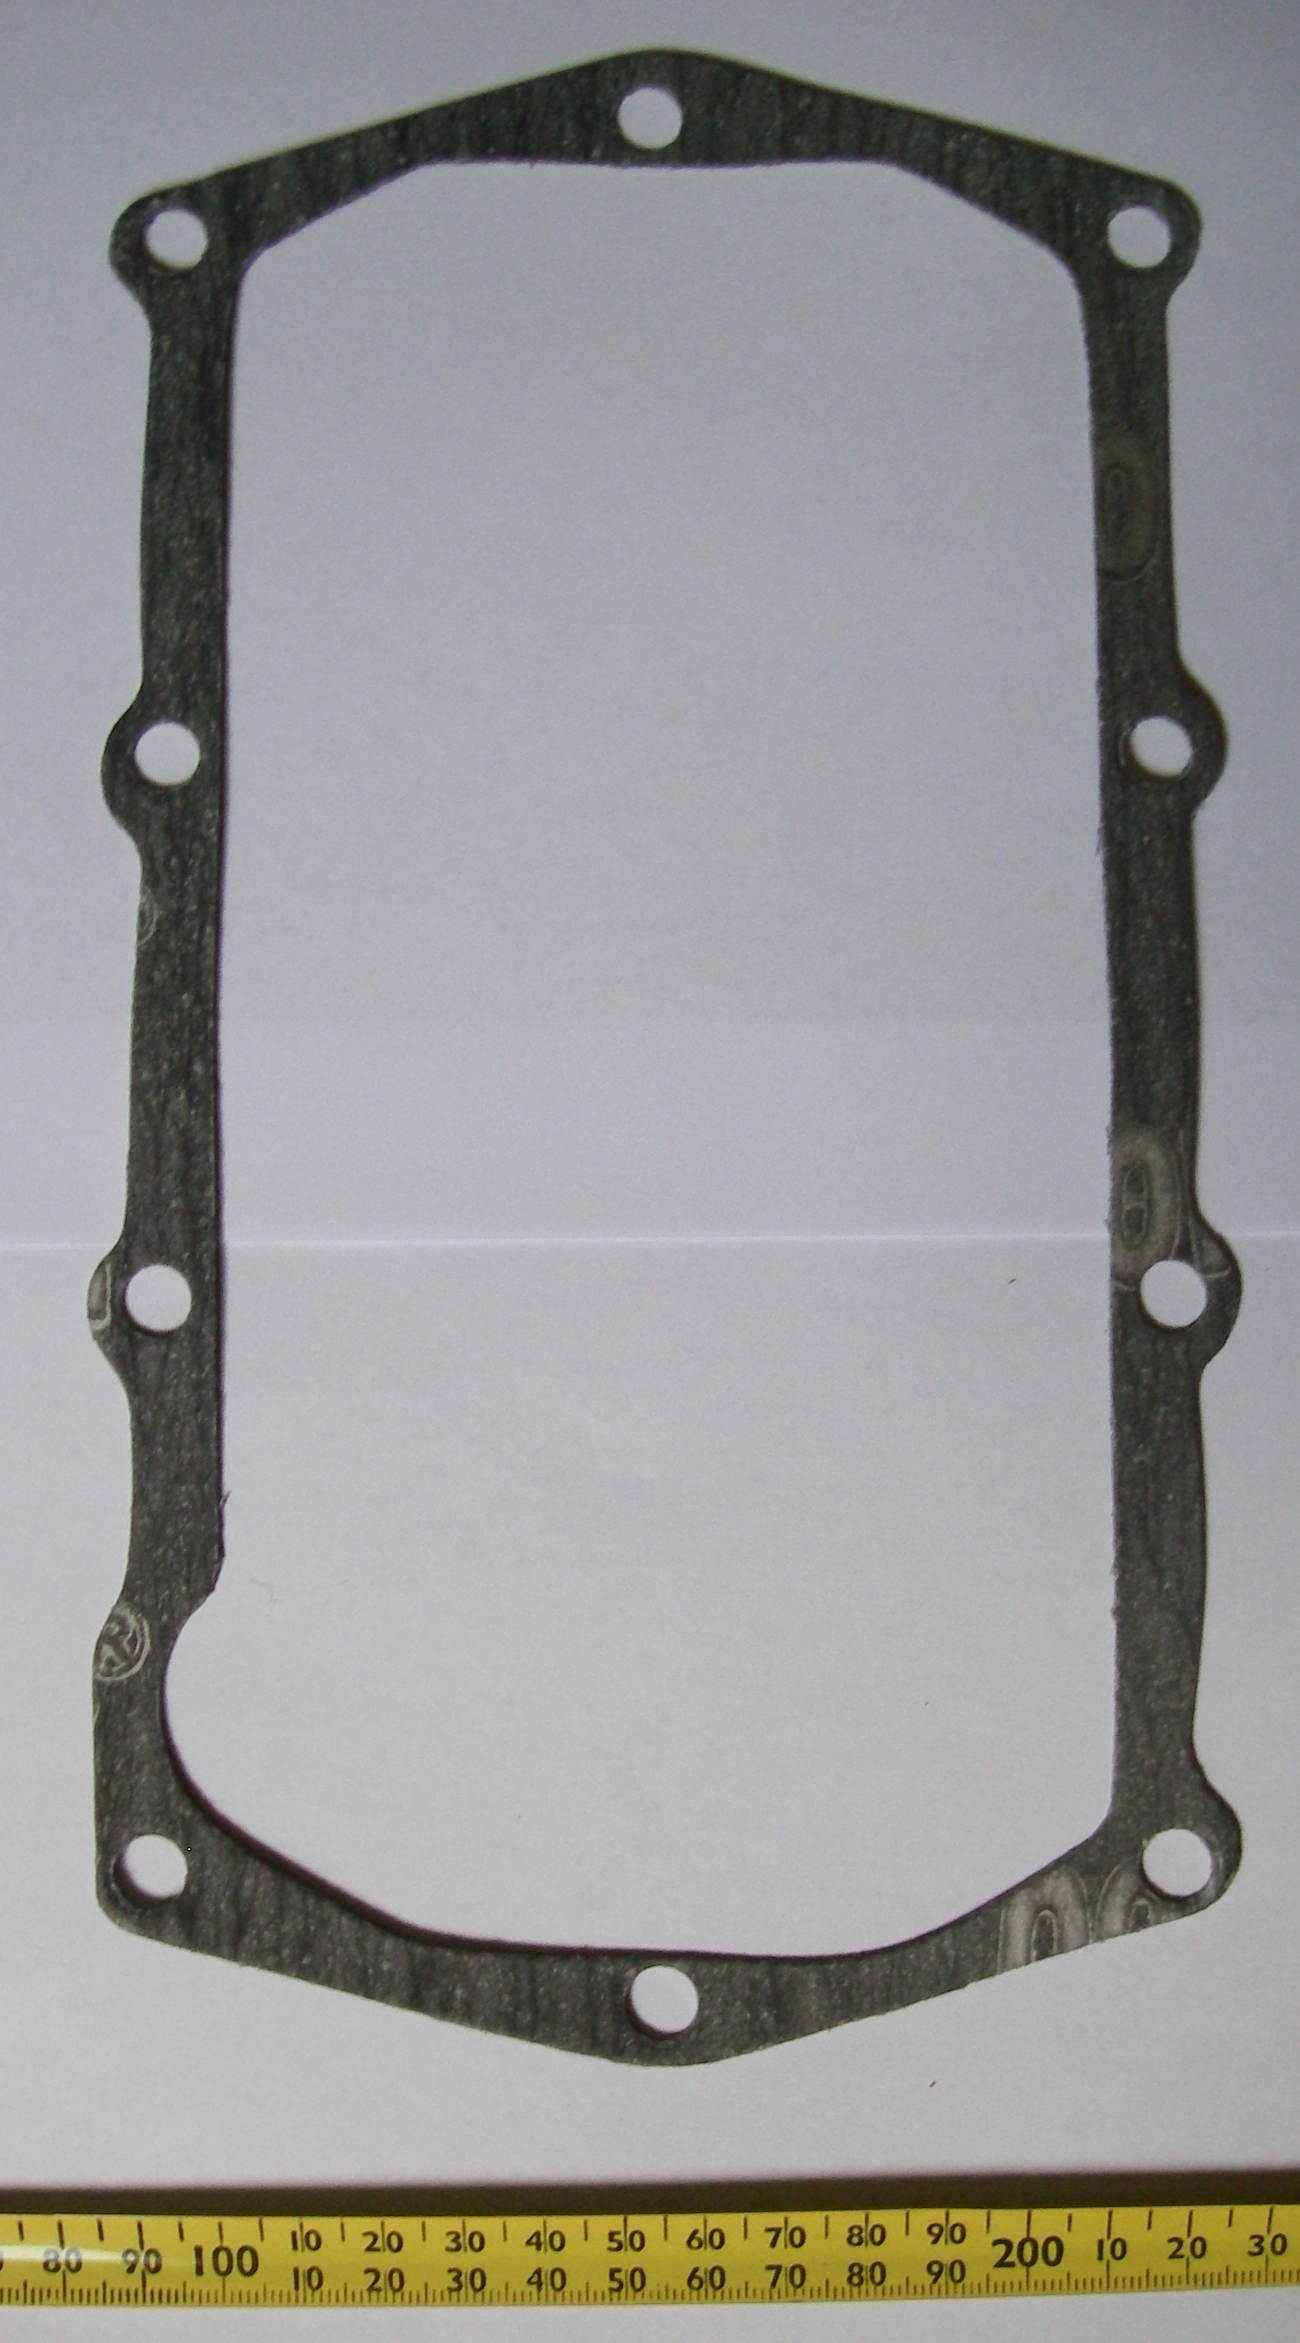 Other Lister  LT/LV Gaskets